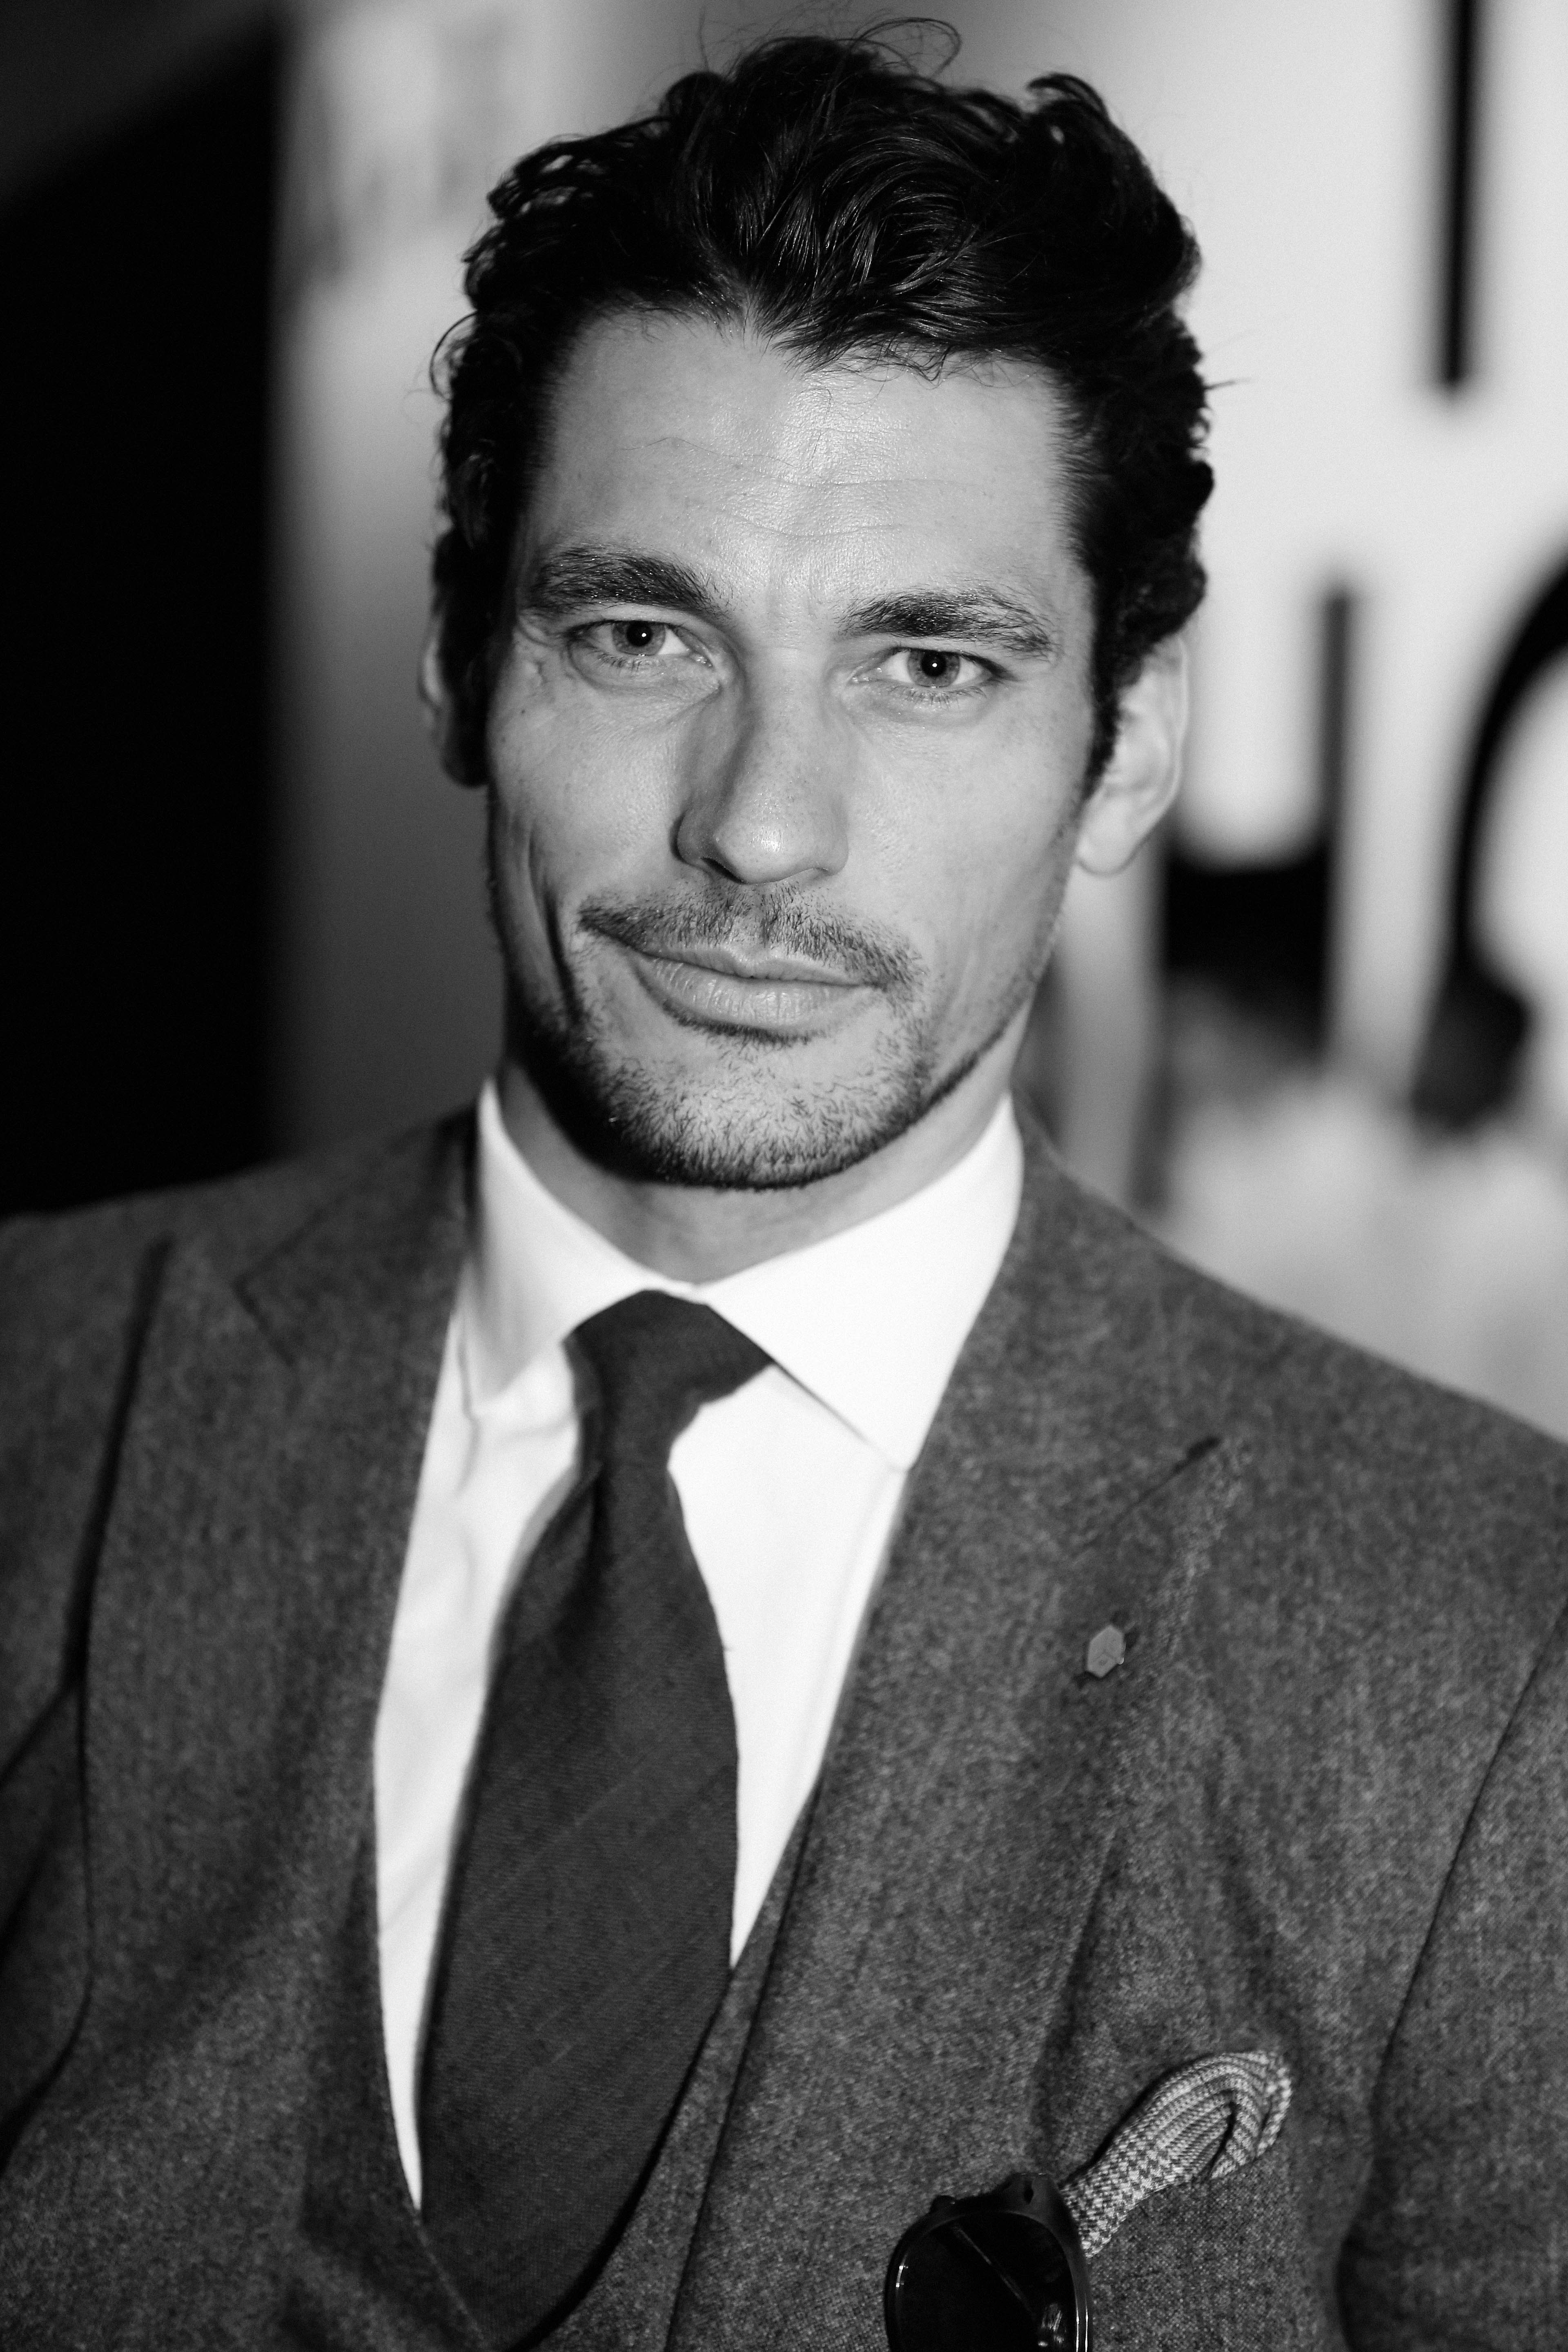 Who is david gandy dating now 2